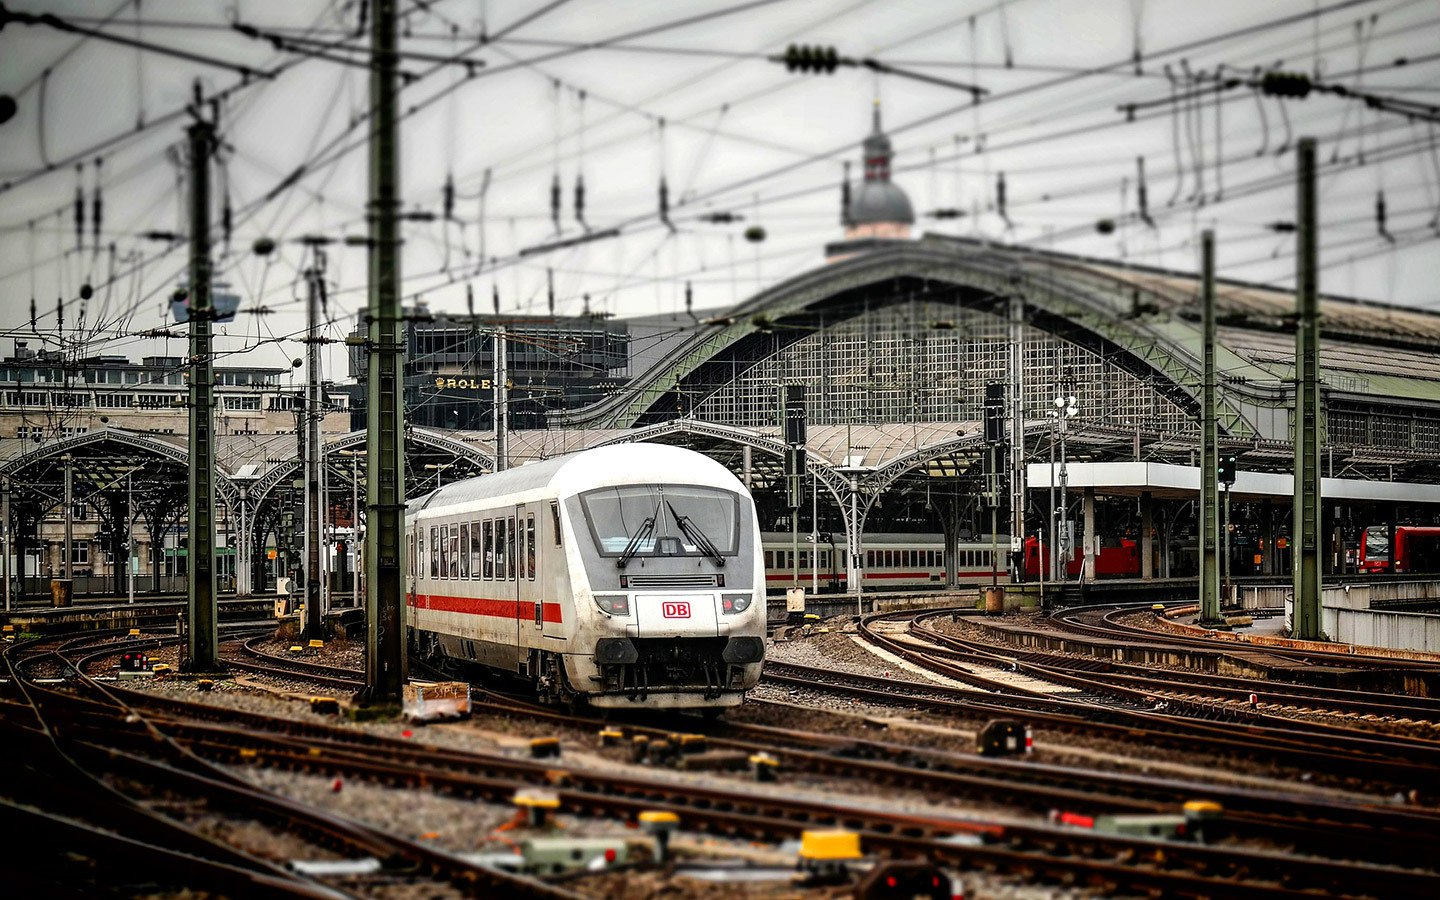 Train station in Cologne, Germany